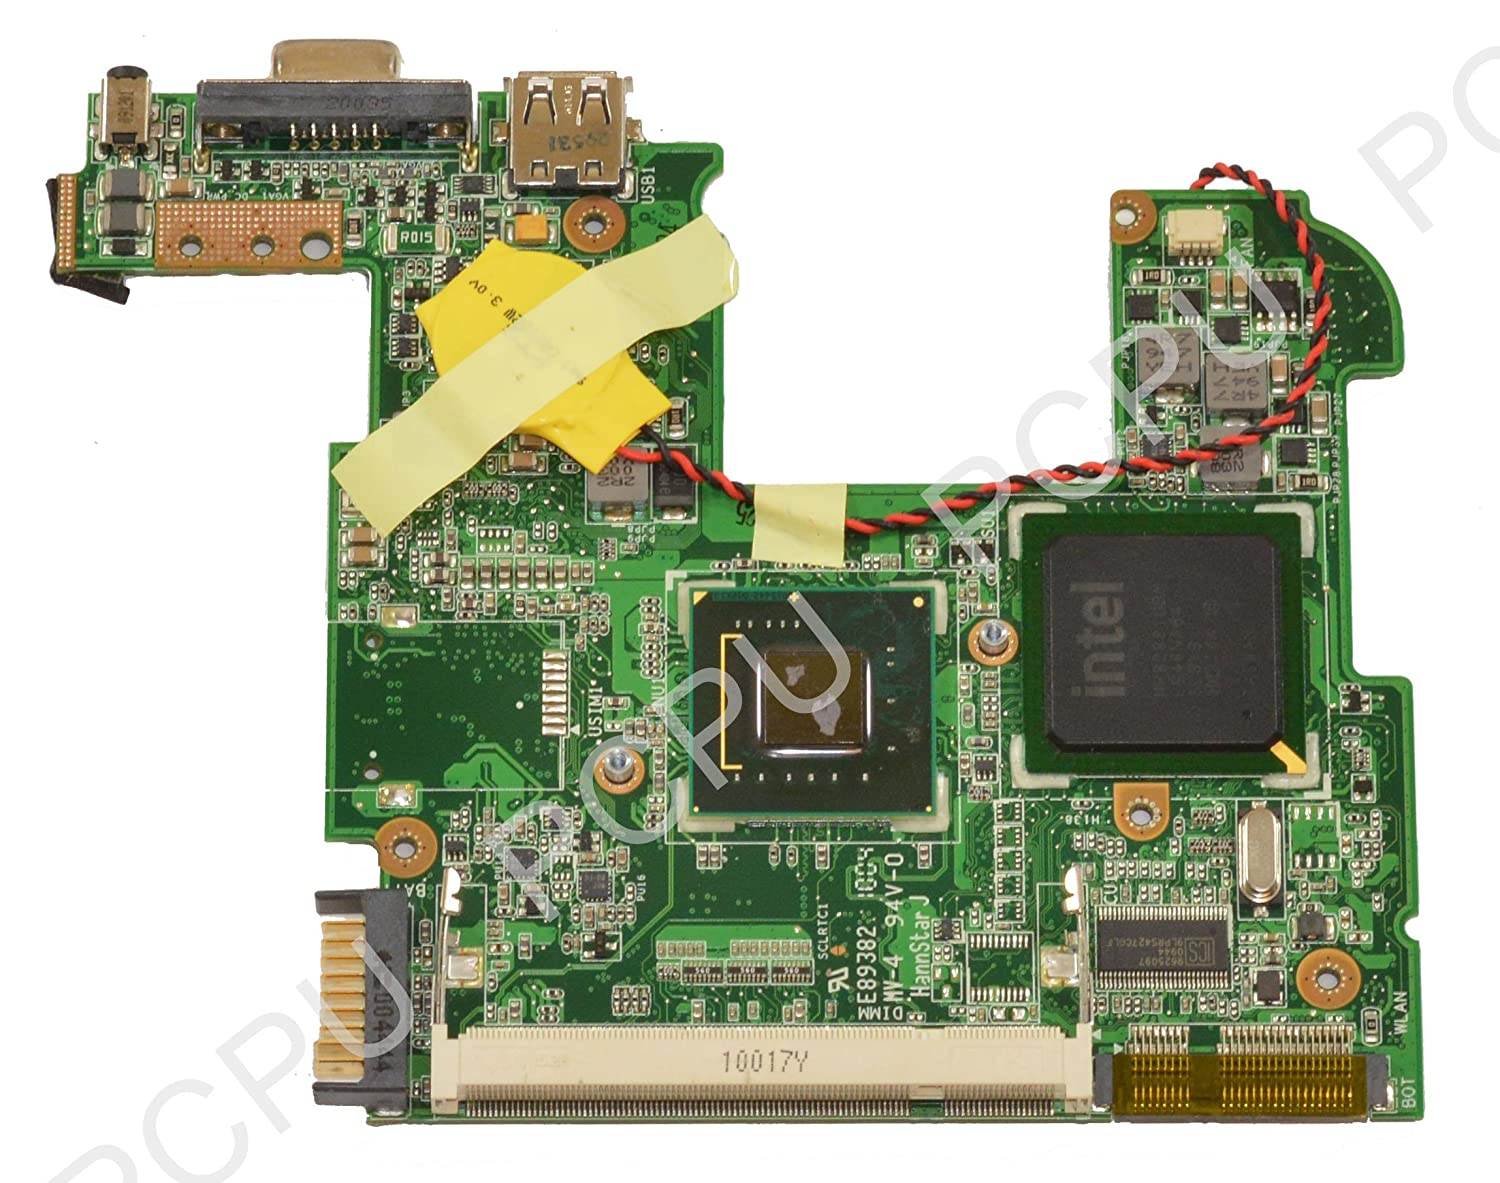 Amazon Asus Netbook Motherboard W Intel Atom 16GHz Processor N270 60 OA1BMB3000 C04 Computers Accessories